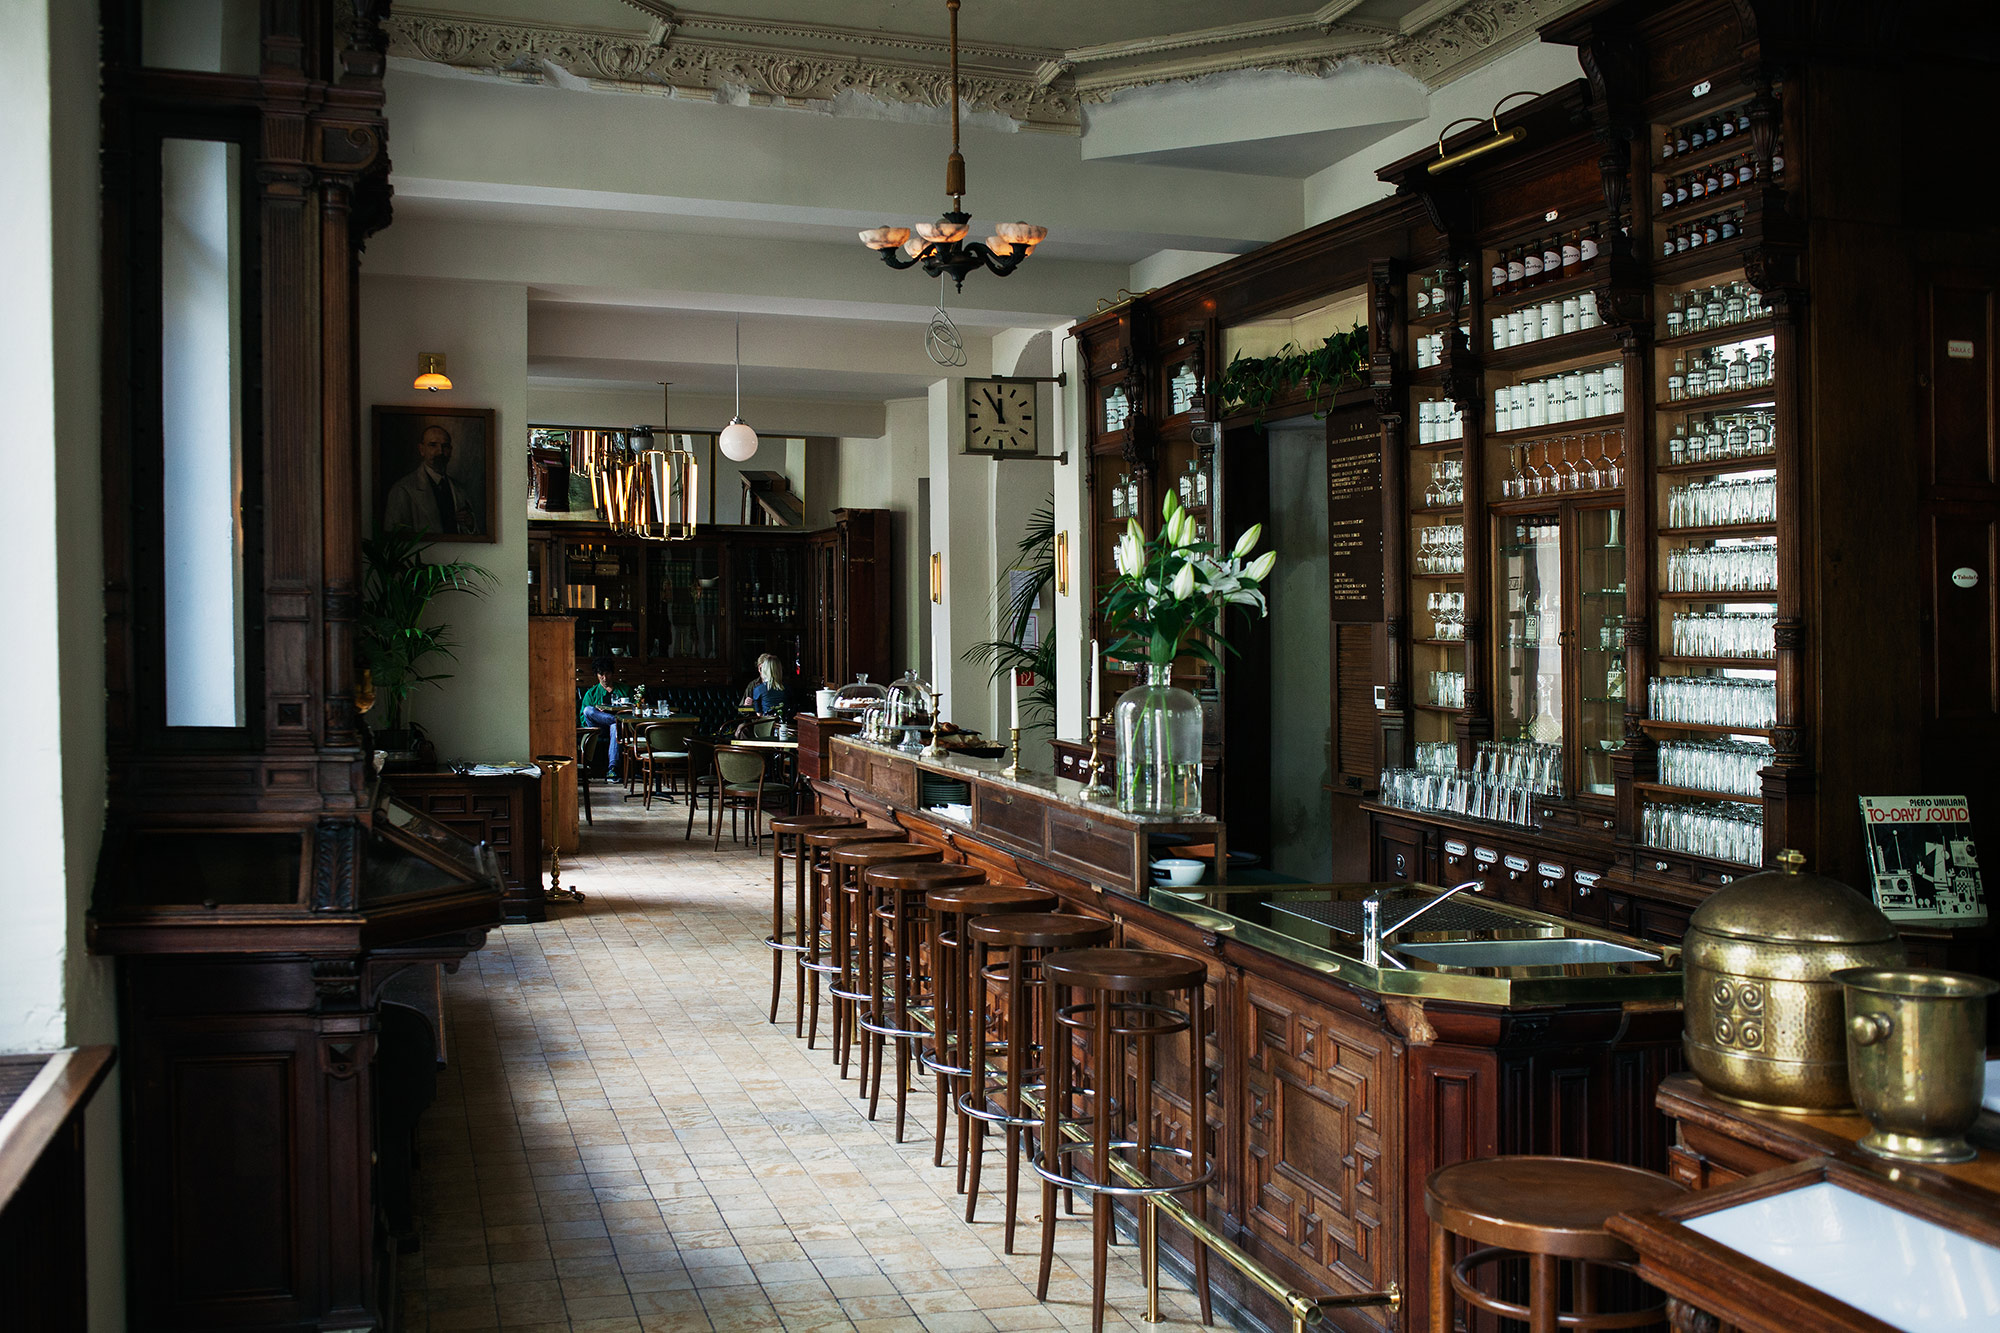 BAR & CLUB_  ORA.  #Apotheke #Bar #Kreuzberg #Ora   http://ora-berlin.de